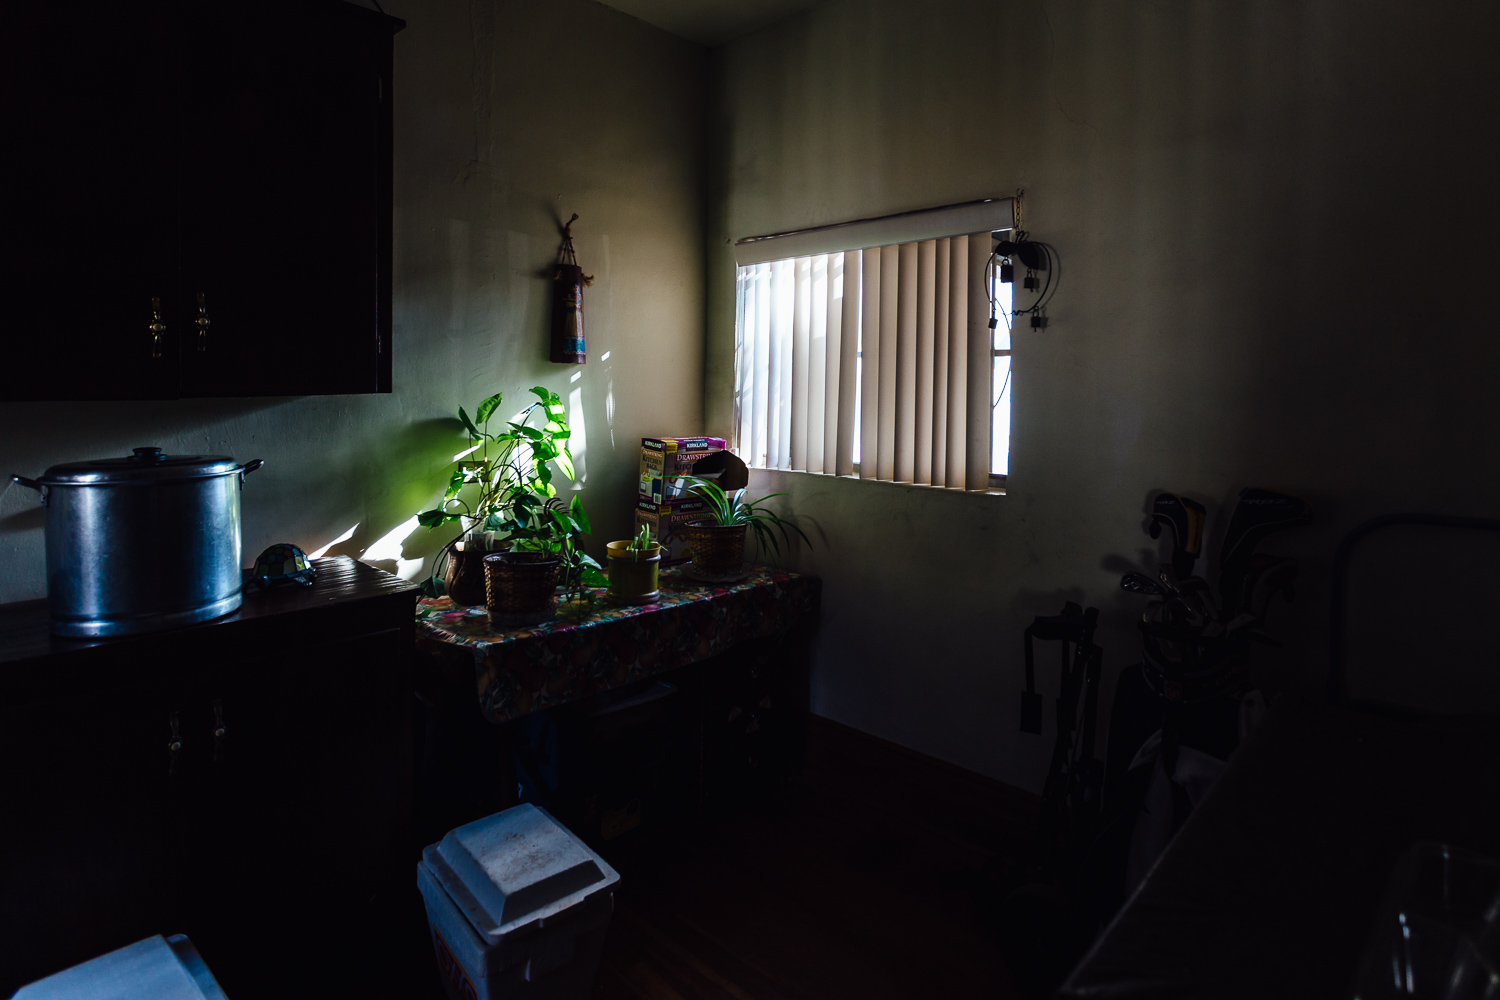 Light-Window-Plants-Mexico-Family-Home-Durazo-Photography